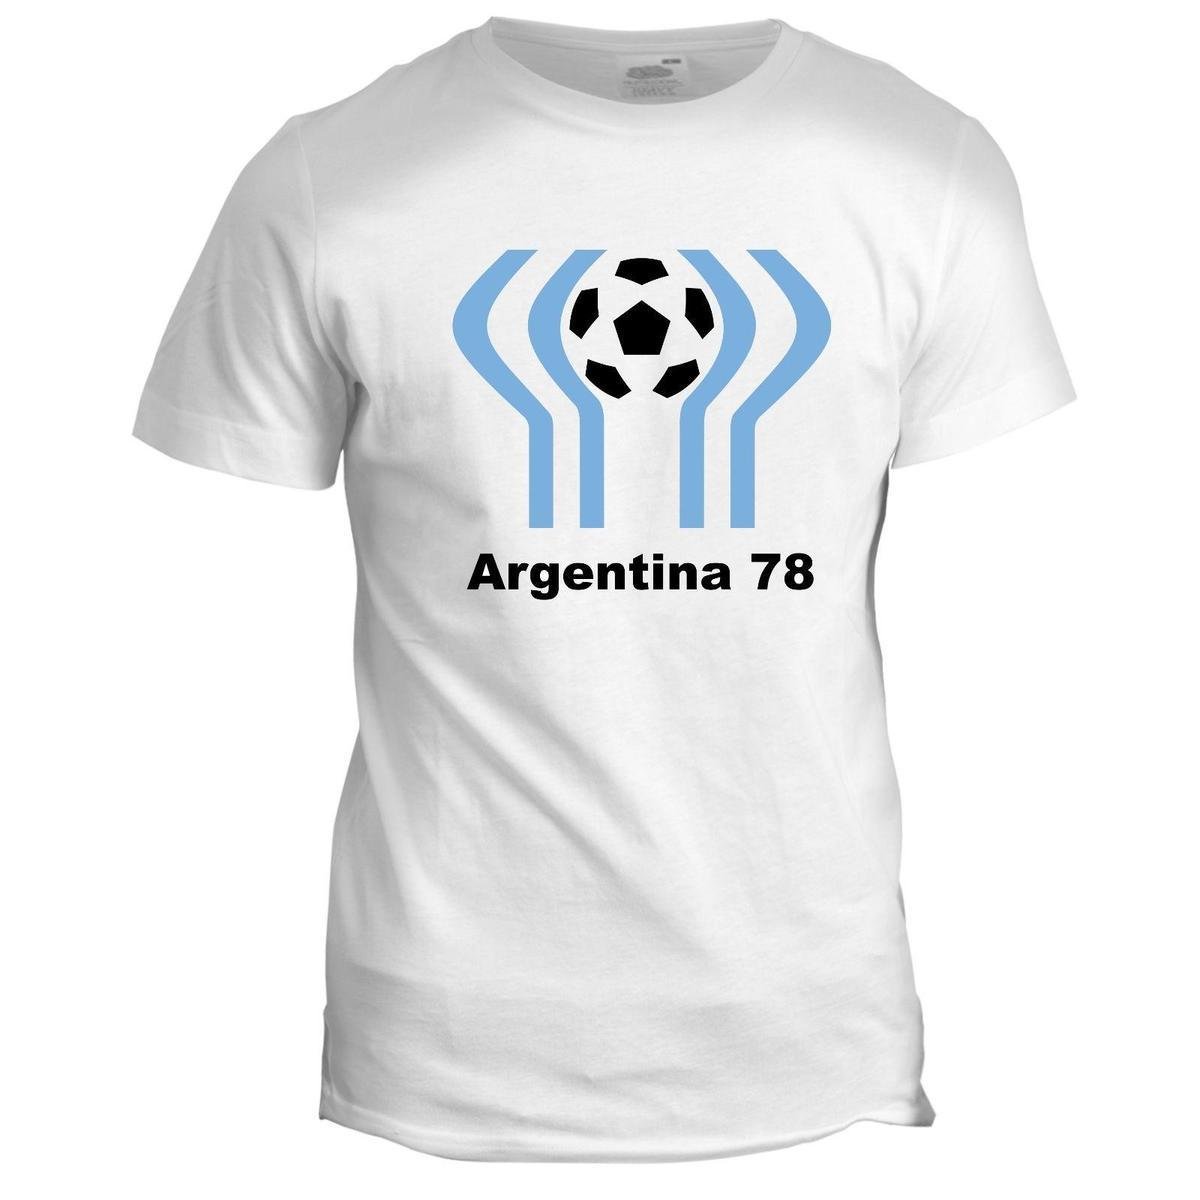 46aaad1aa8d Argentina 78 Football World Cup Mascot Tumblr Soccer Mens Retro 82 T Shirt  Humor Shirts Offensive T Shirt From Lefan05